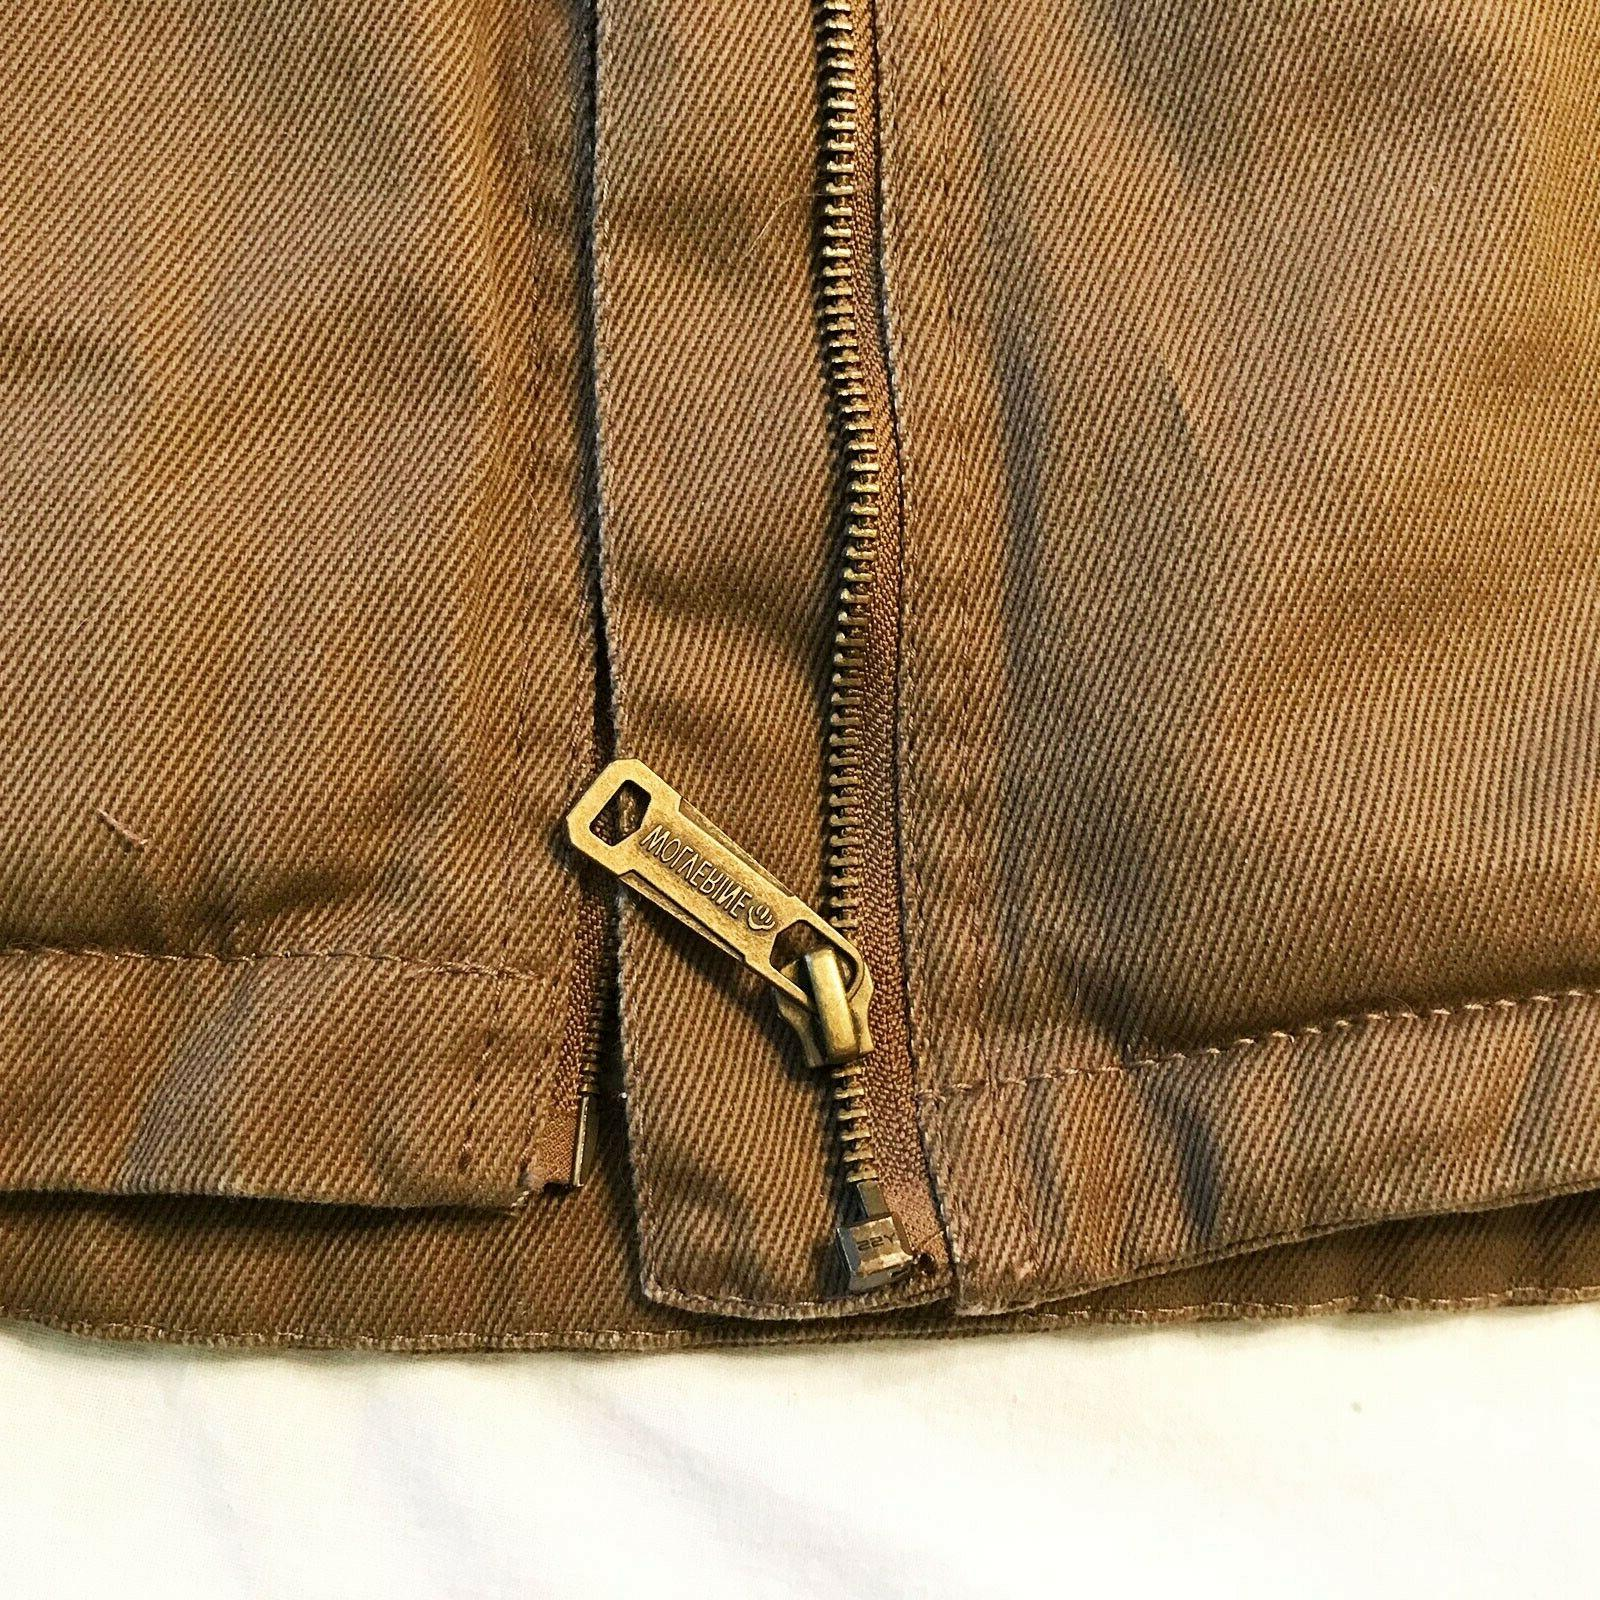 Wolverine Vest Sherpa Lined - With Tags